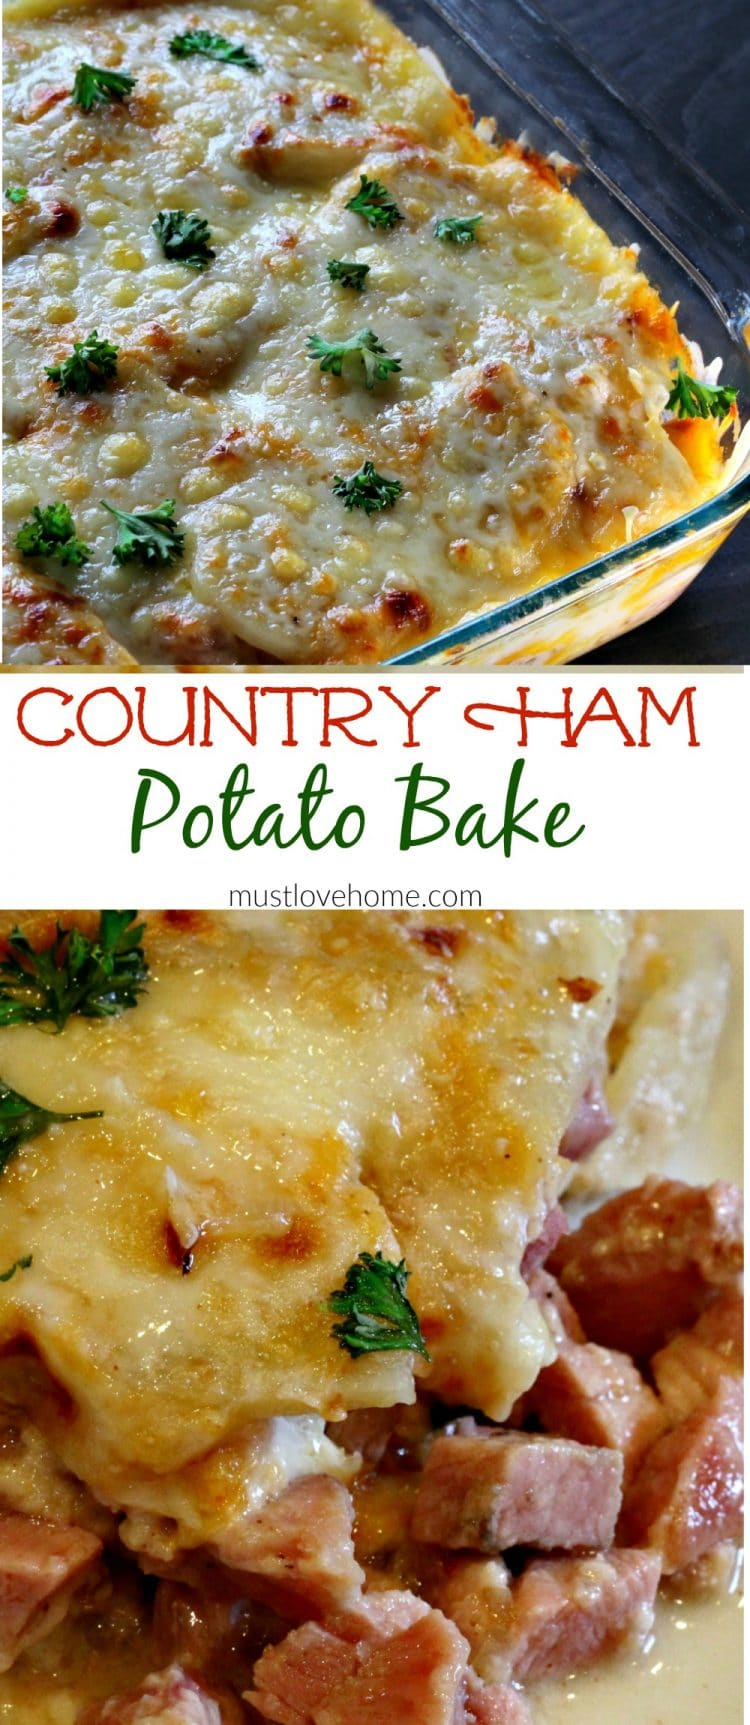 This Recipe Was Adapted From Scalloped Potatoes And Country Ham By Damaris Phillips On Food Network If You Love Leftover Ham Recipes You Might Also Like